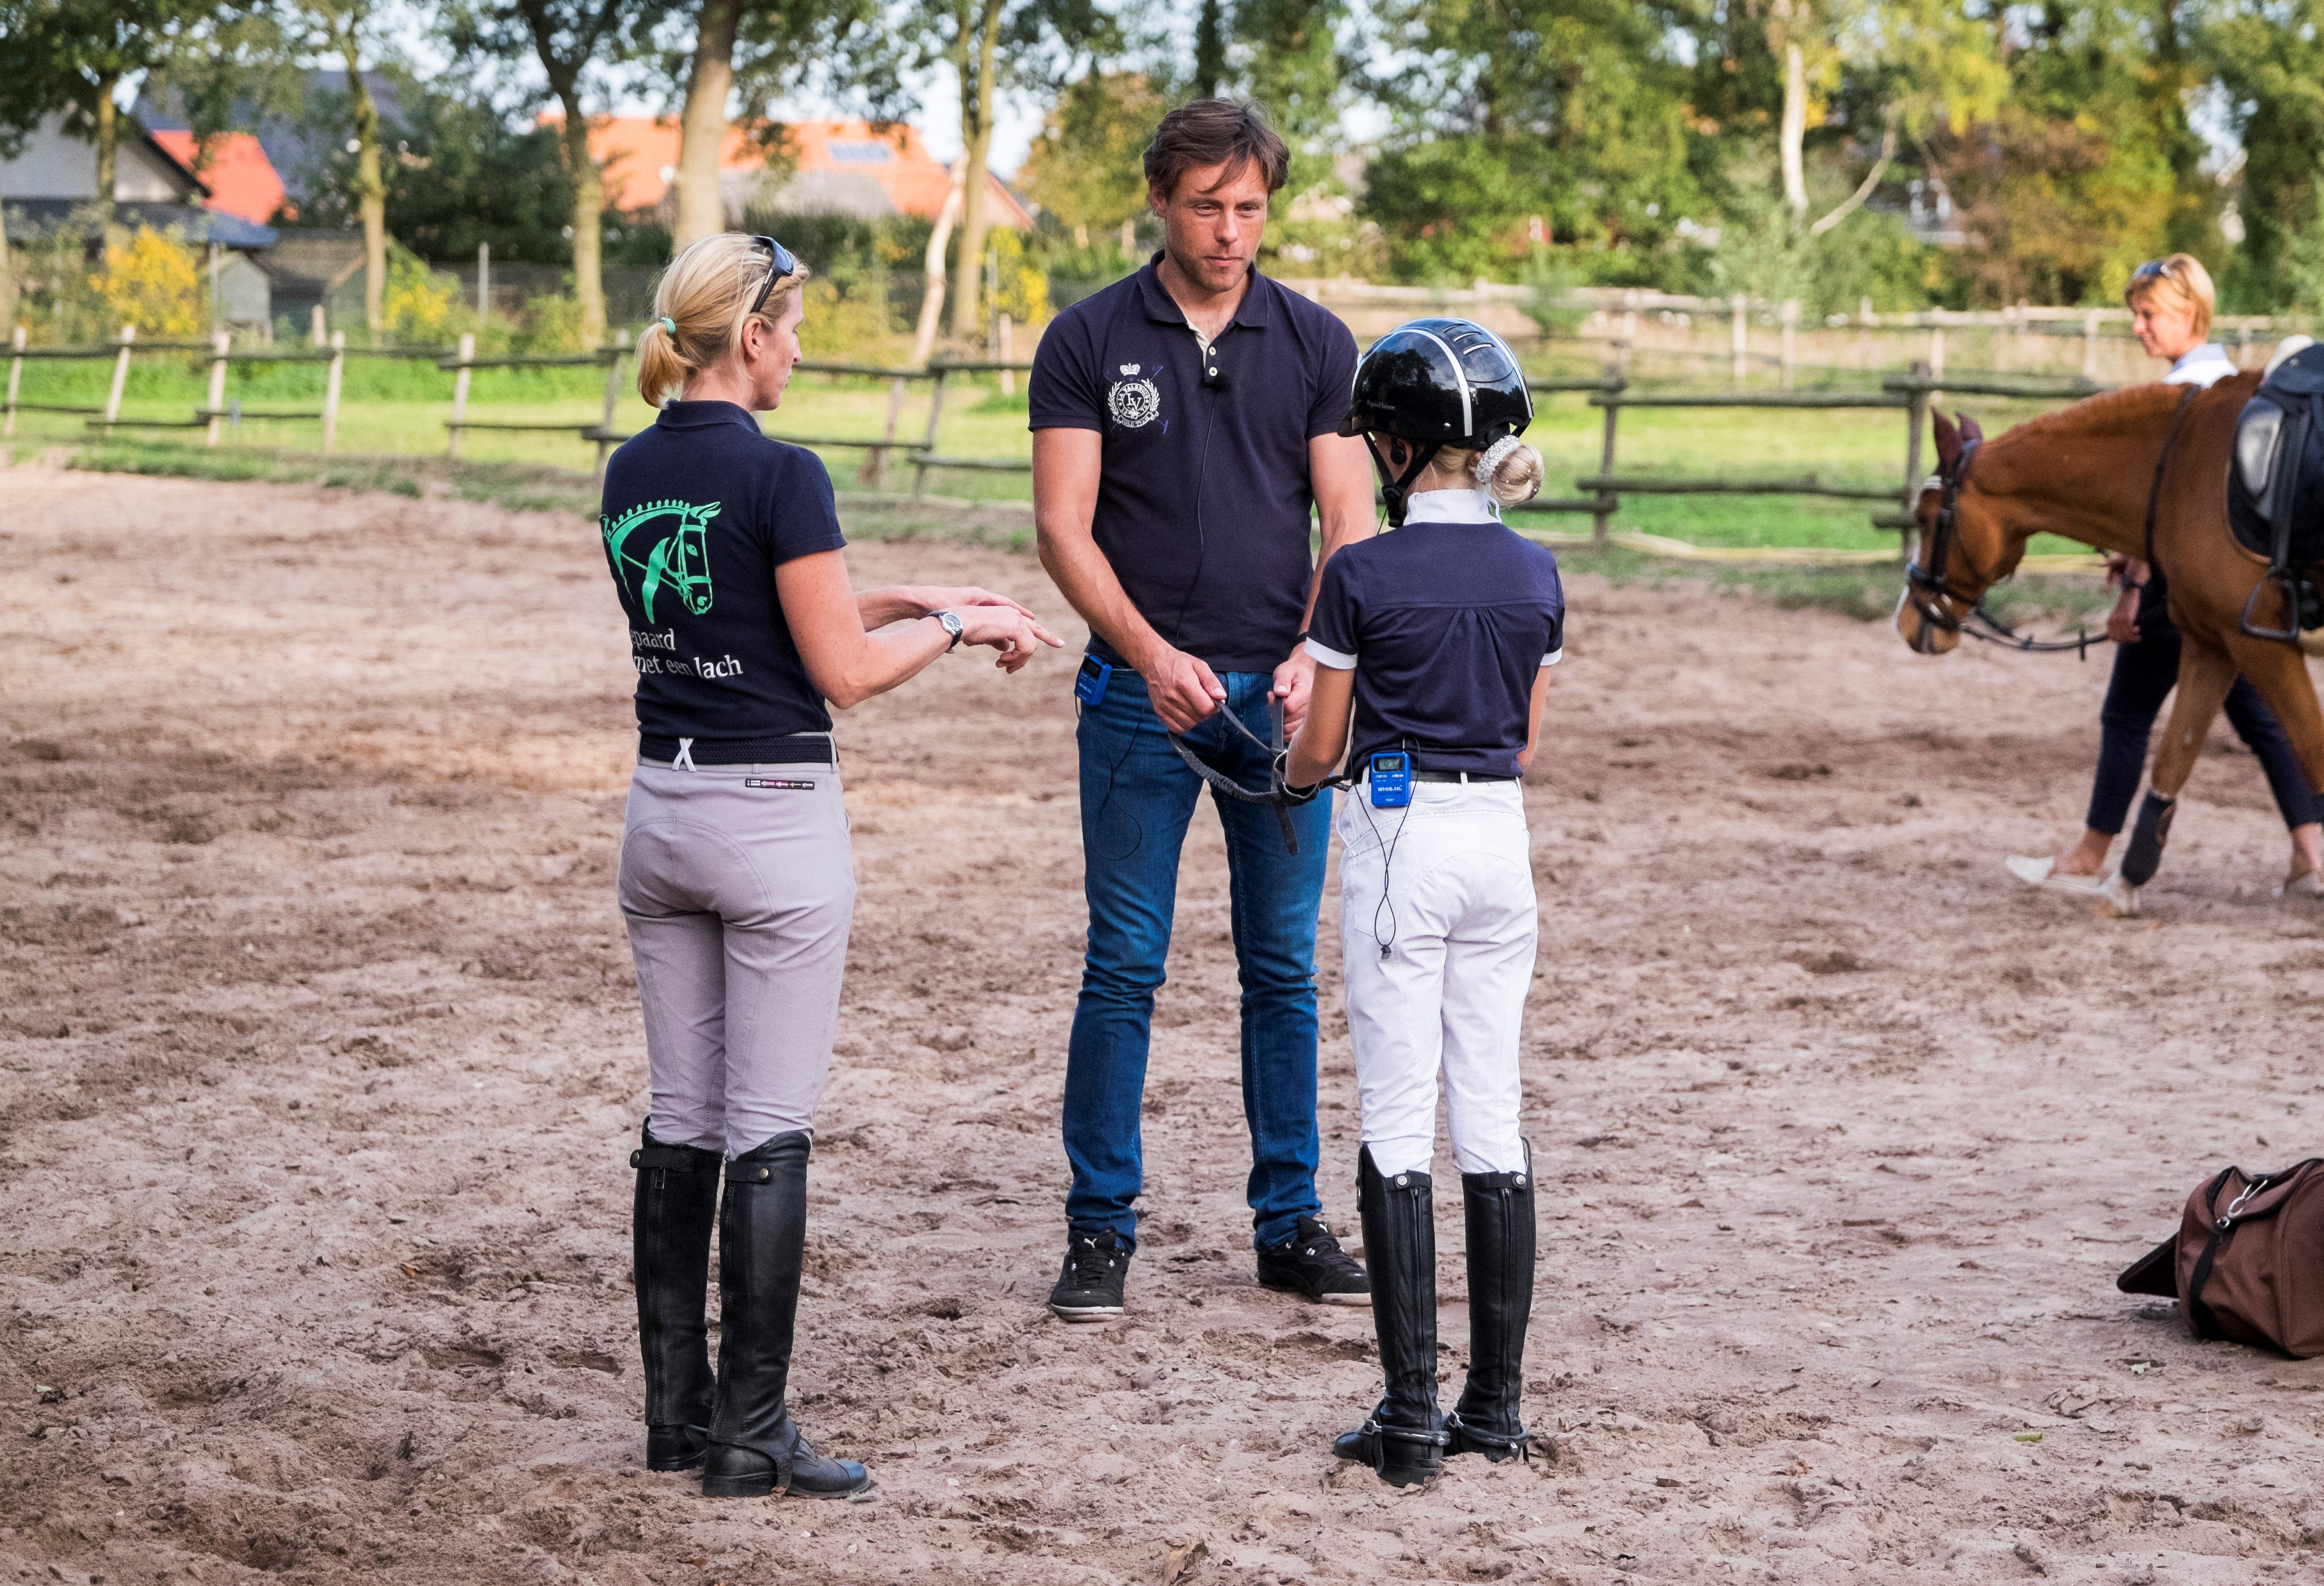 Clinics Laurens van Lieren en Roos Dyson: Working together in balance